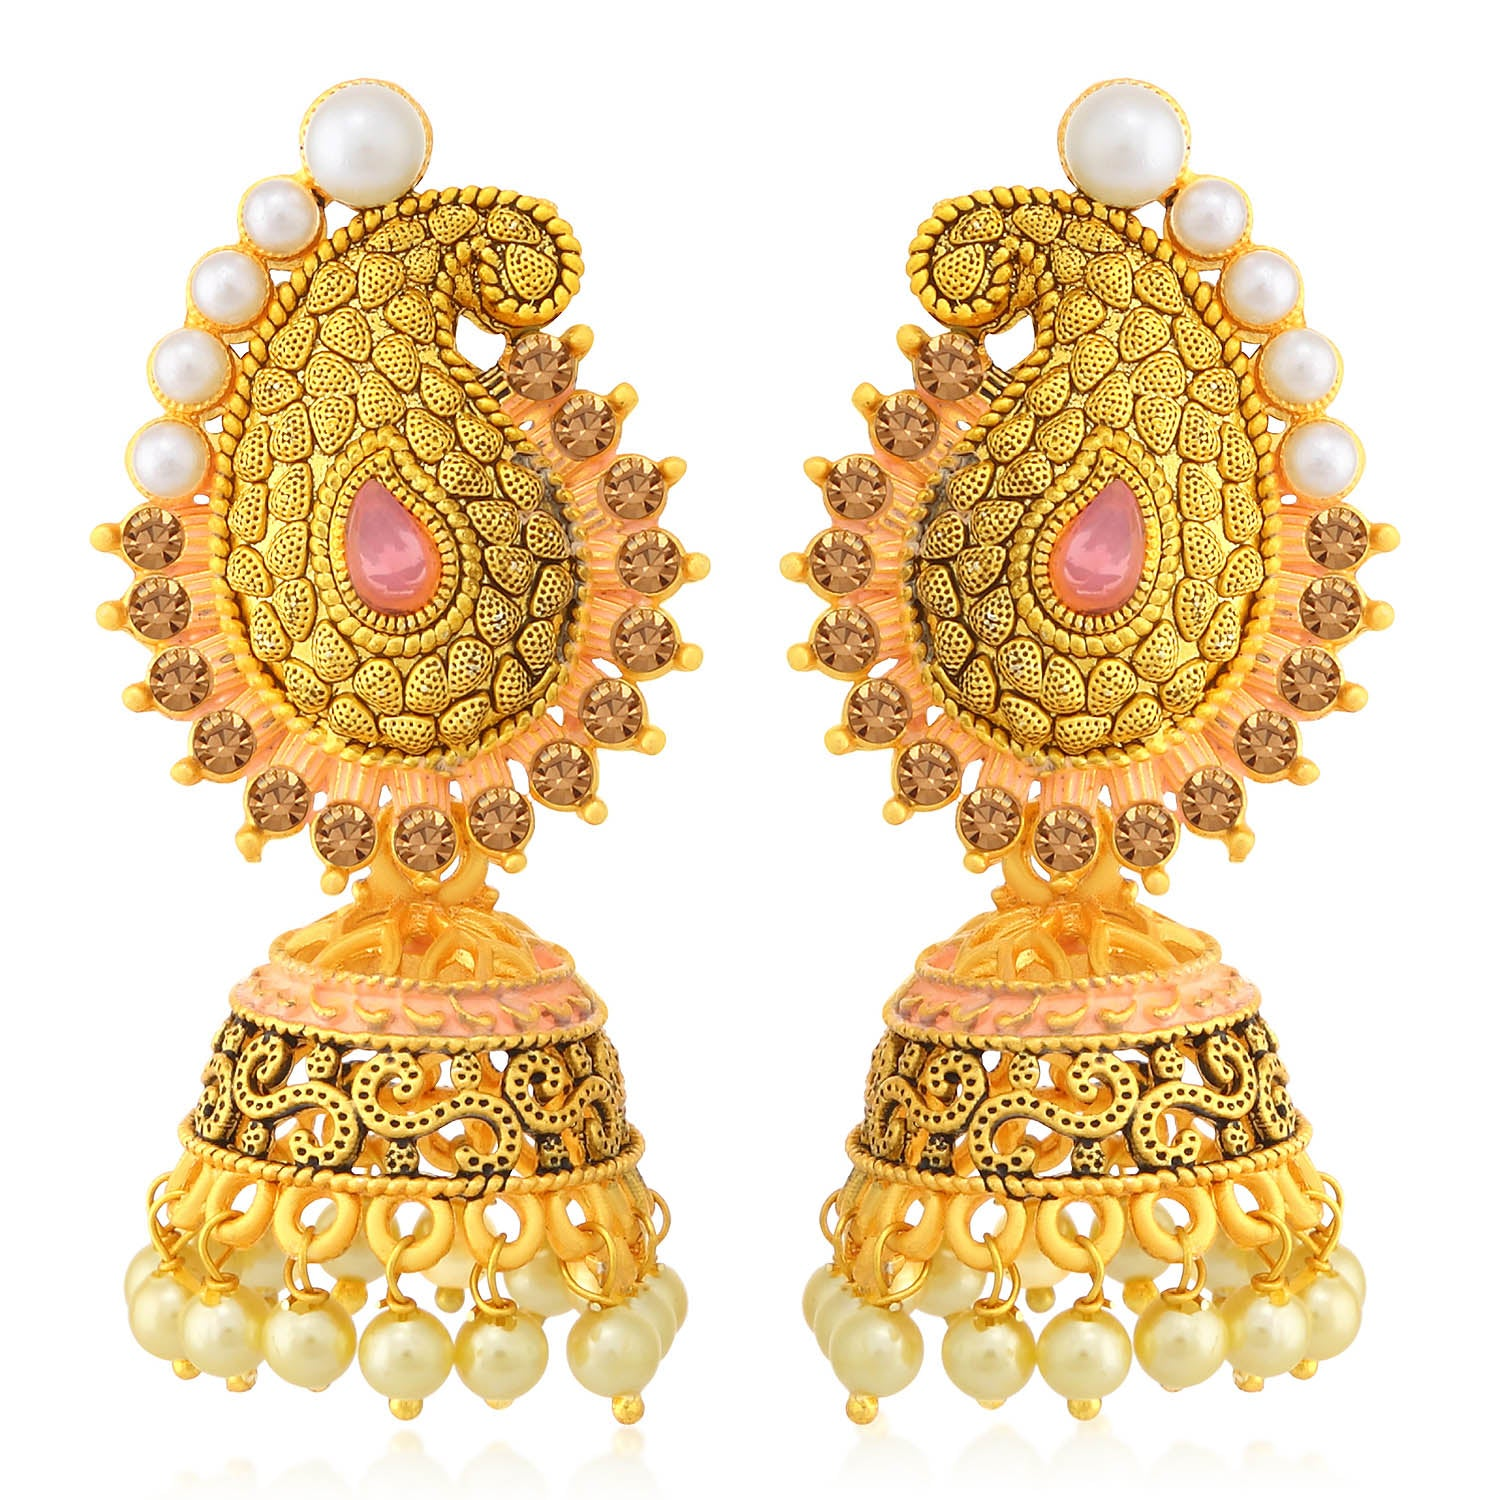 Sukkhi Adorable LCT Stone Gold Plated Paisley Pearl Pink Mint Meena Collection Jhumki Earring For Women-SUKKHI1-Earring